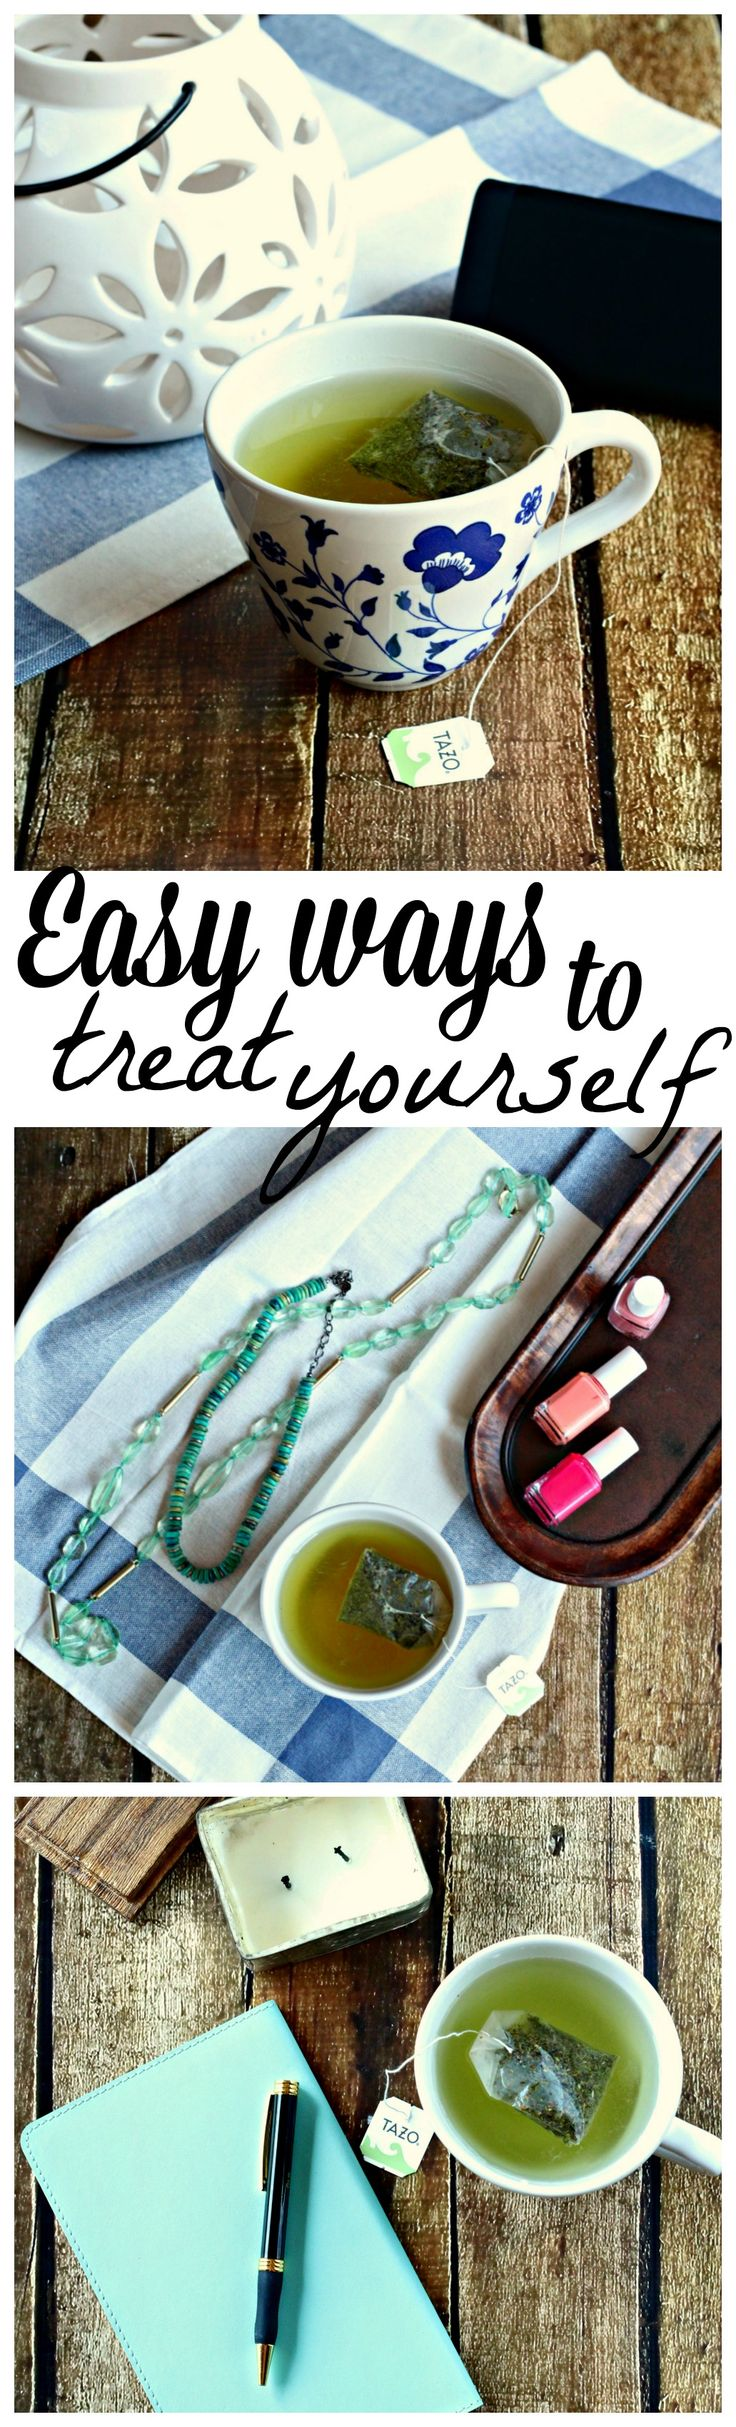 Easy ways to treat yourself, inspired by Tazo® tea. #sipjoyfully #ad